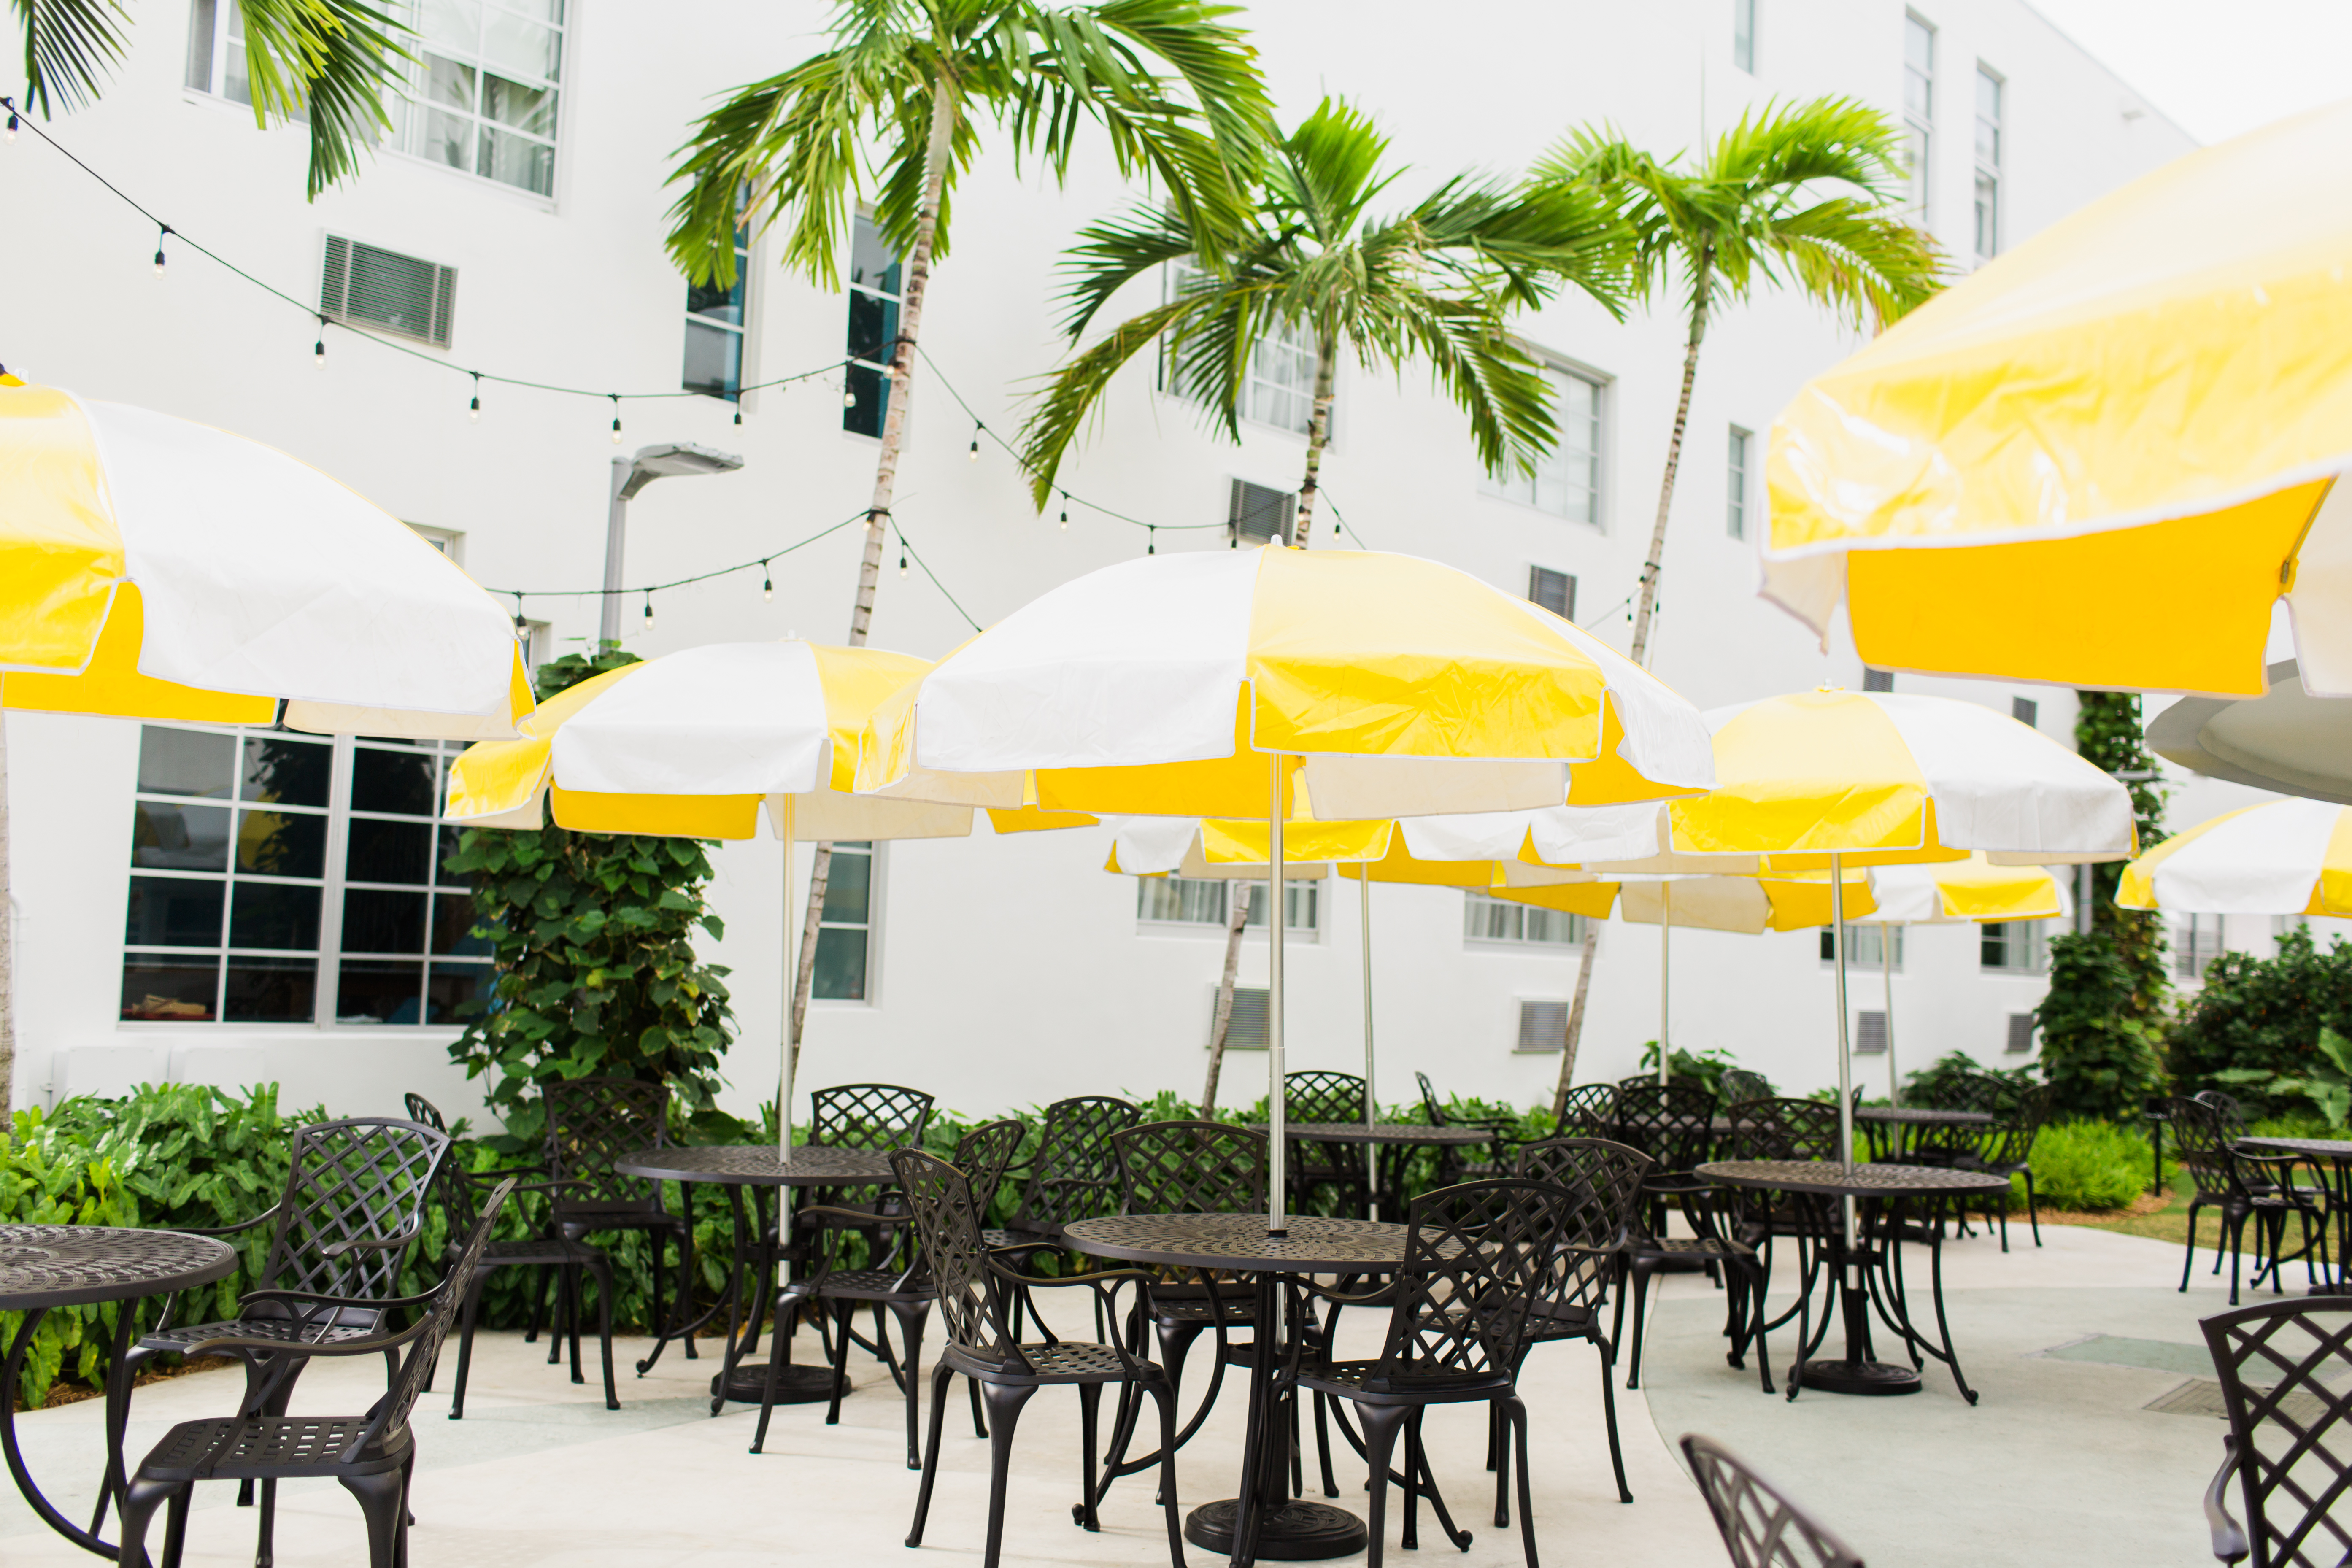 Washington park hotel in south beach miami was a blast i love this new retro style boutique hotel so much the new washington park hotel opened in the